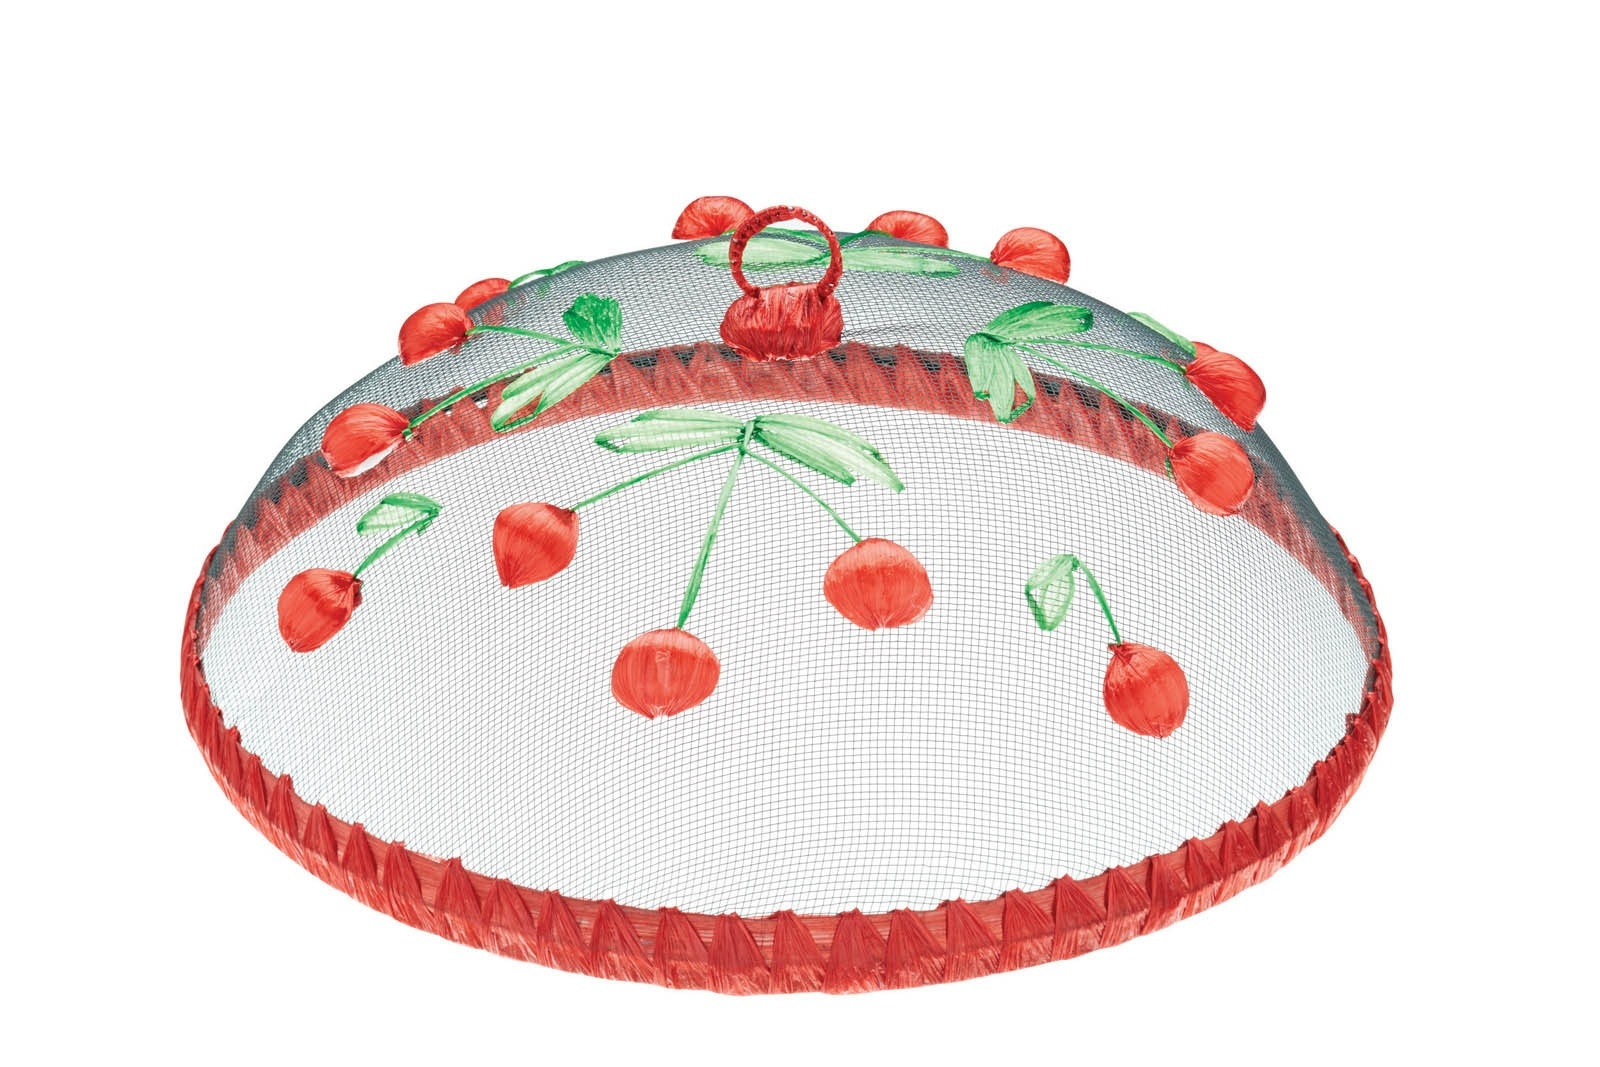 Kitchen craft round fabric mesh embroidered rigid food covers for Kitchen xpress overseas ltd contact number